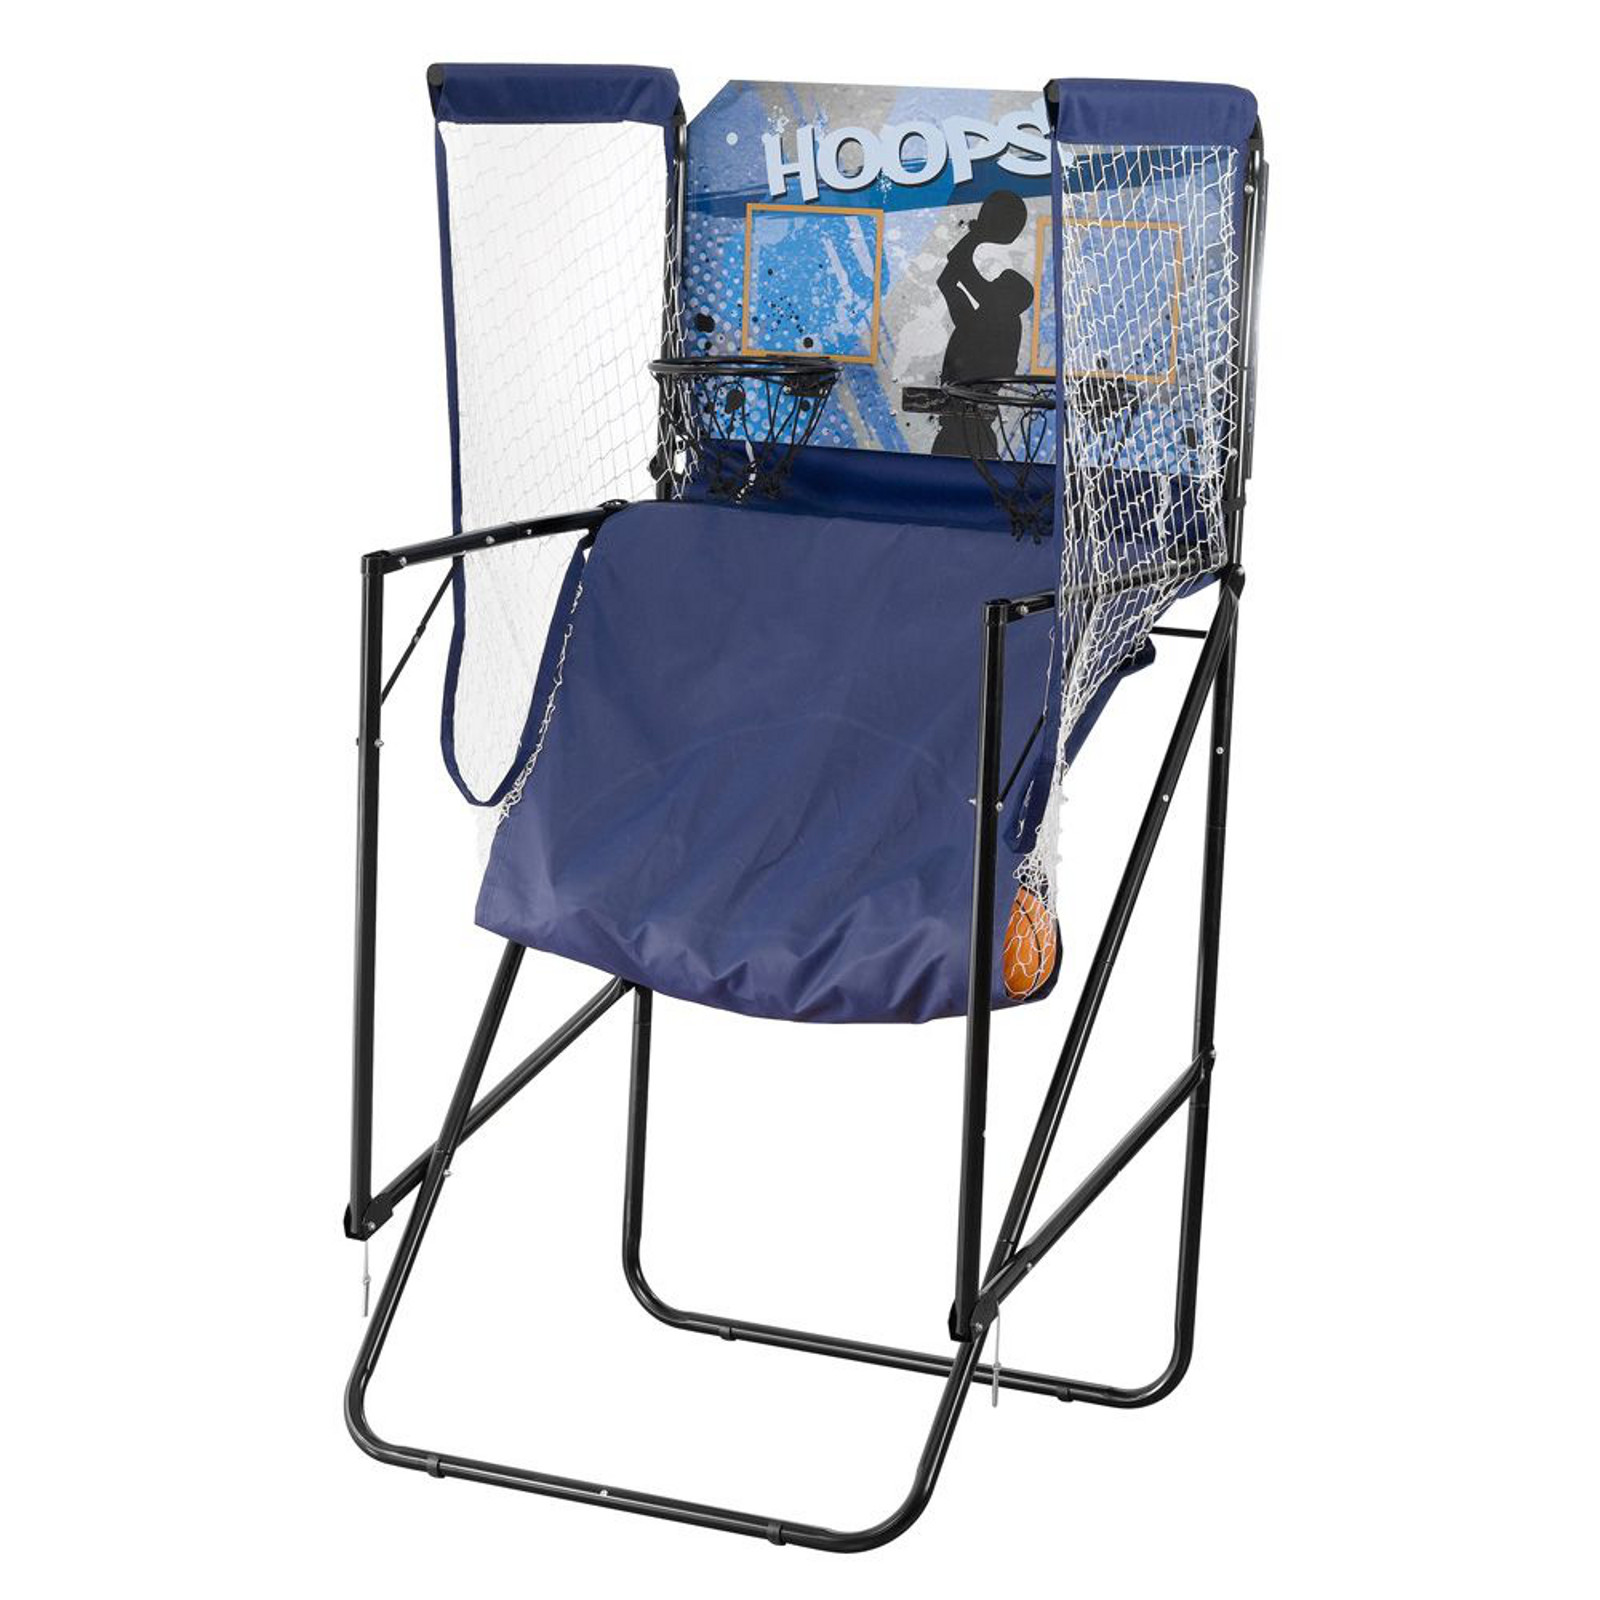 Hathaway™ Hoops Dual Electronic Basketball Game